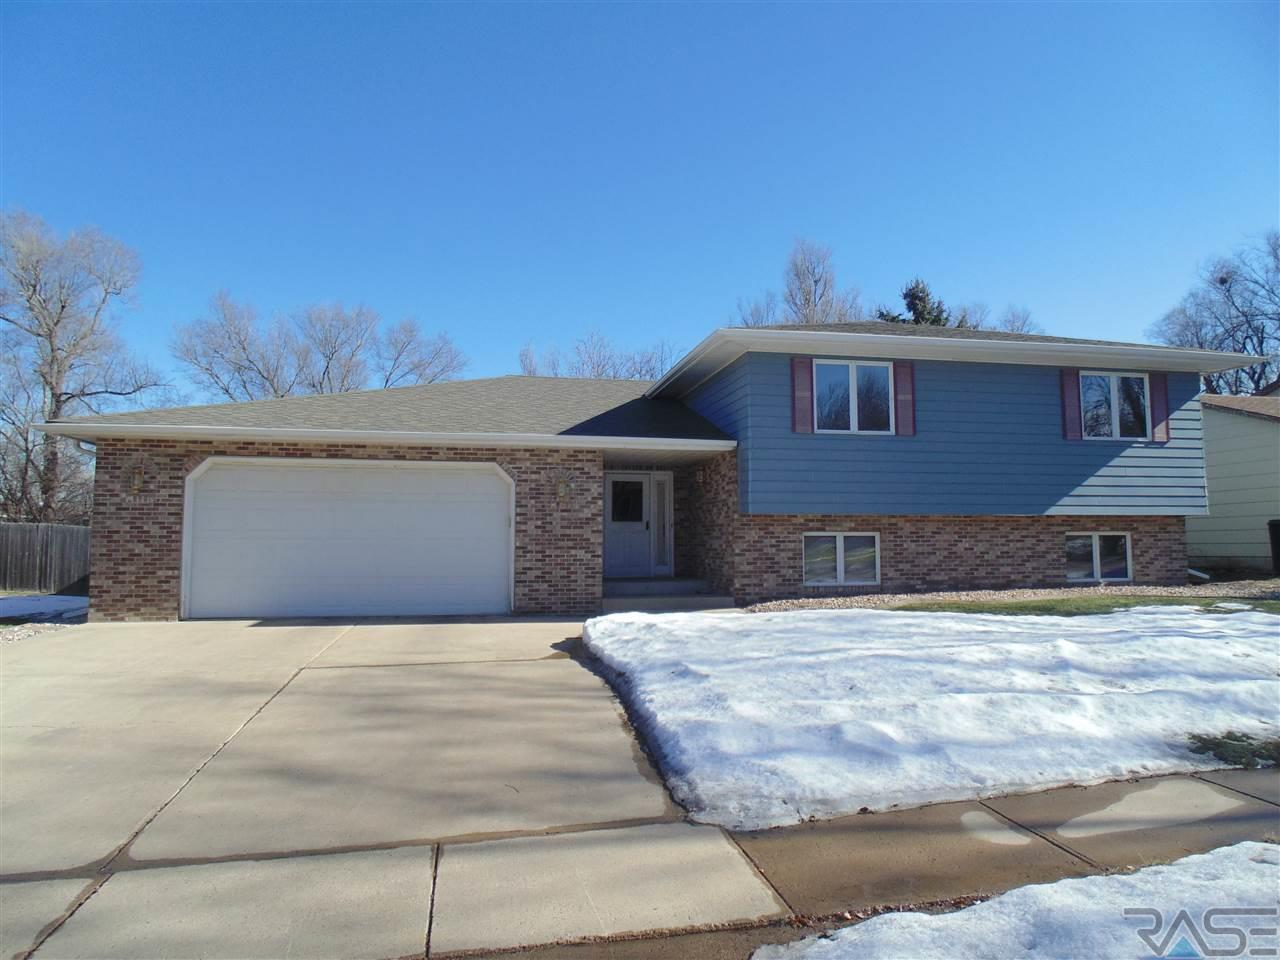 1208 N Lowell Ave, Sioux Falls, SD 57103